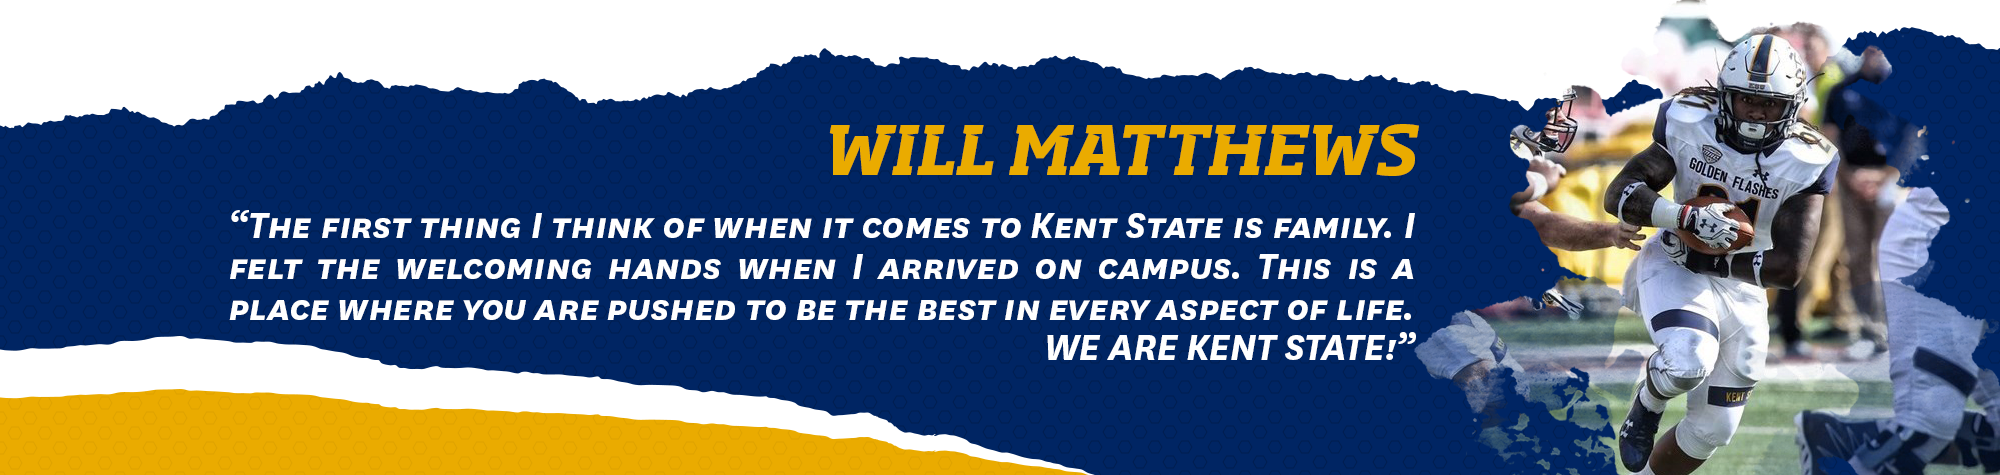 Football roster list clipart banner royalty free download Nathan Puthoff - 2017 Football Roster - Kent State University banner royalty free download